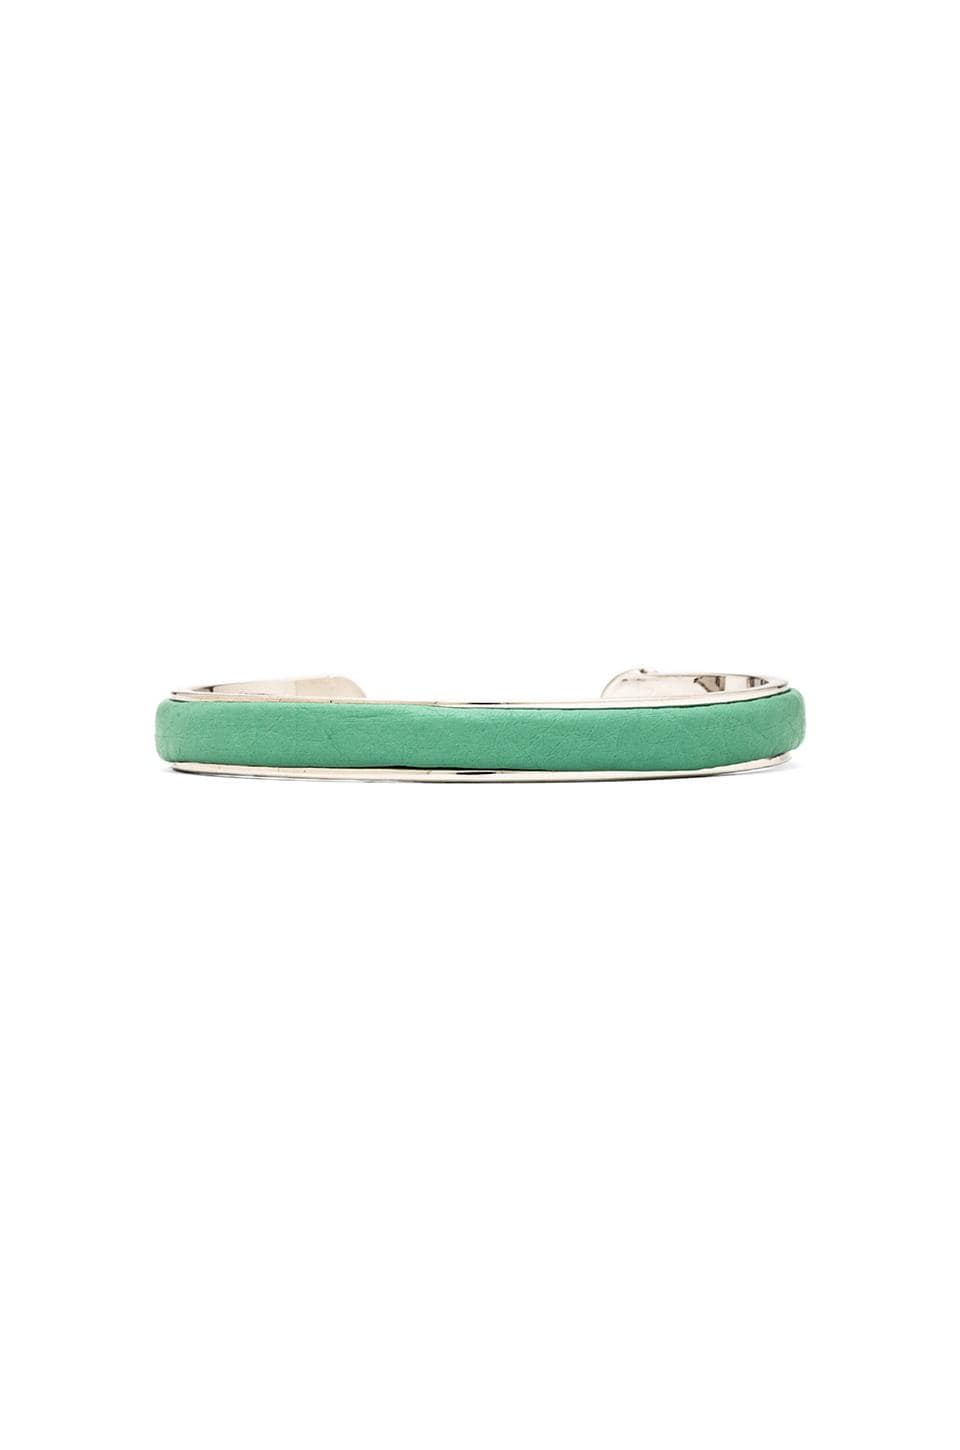 Marc by Marc Jacobs Leather Cuff in Minty & Argento